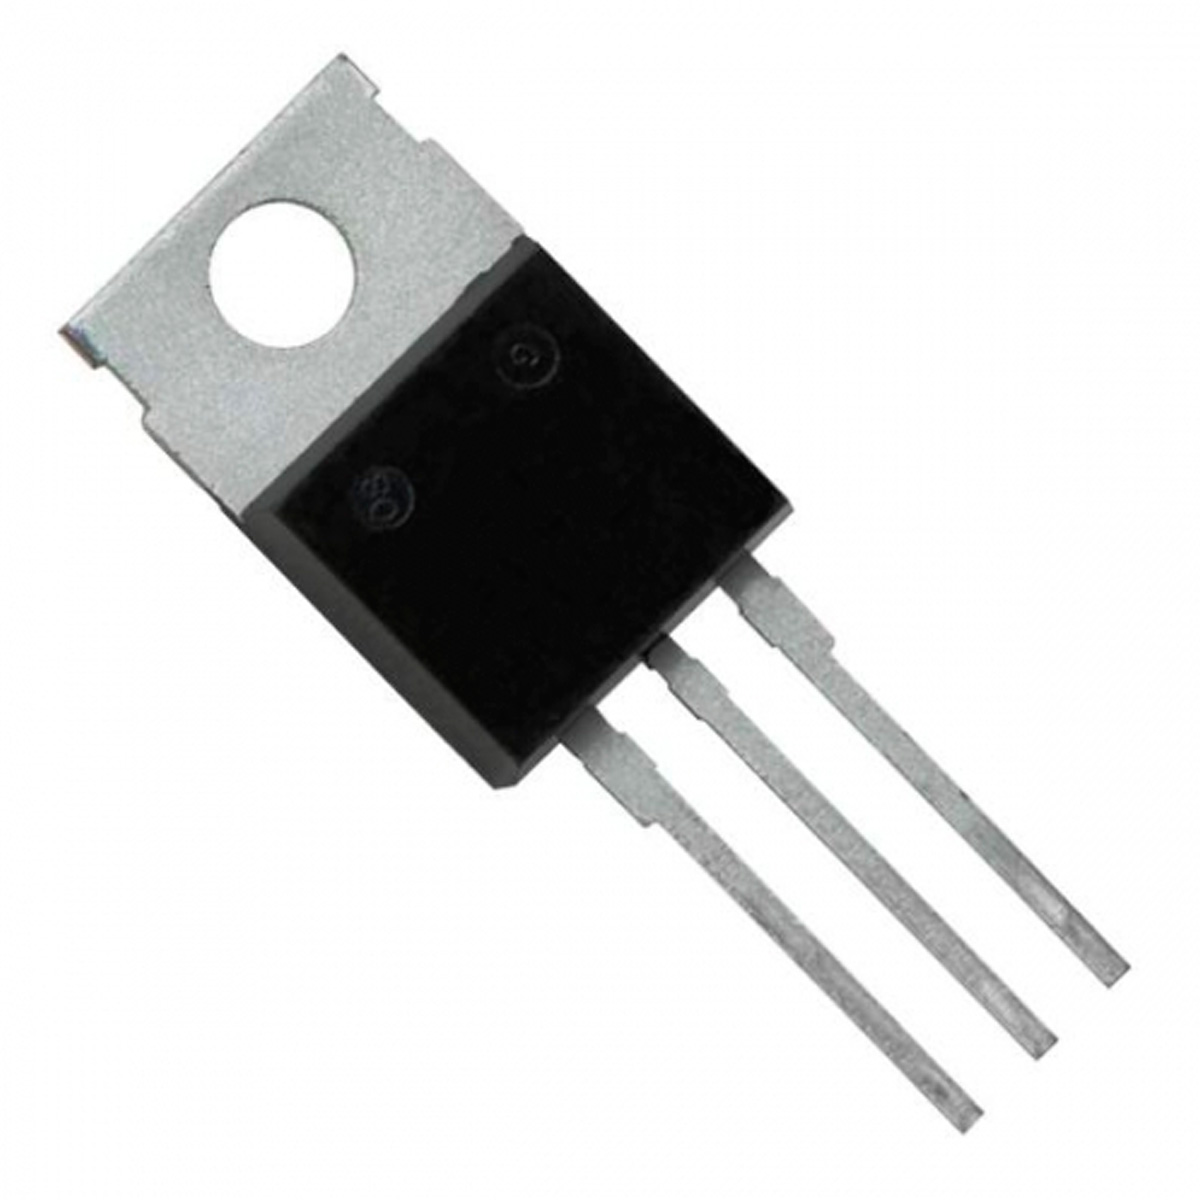 Reguladores Ajustables TO-220 LM317T LM337T Cicuitos Integrados CI Electronica Electronico Guatemala ElectronicaSMD